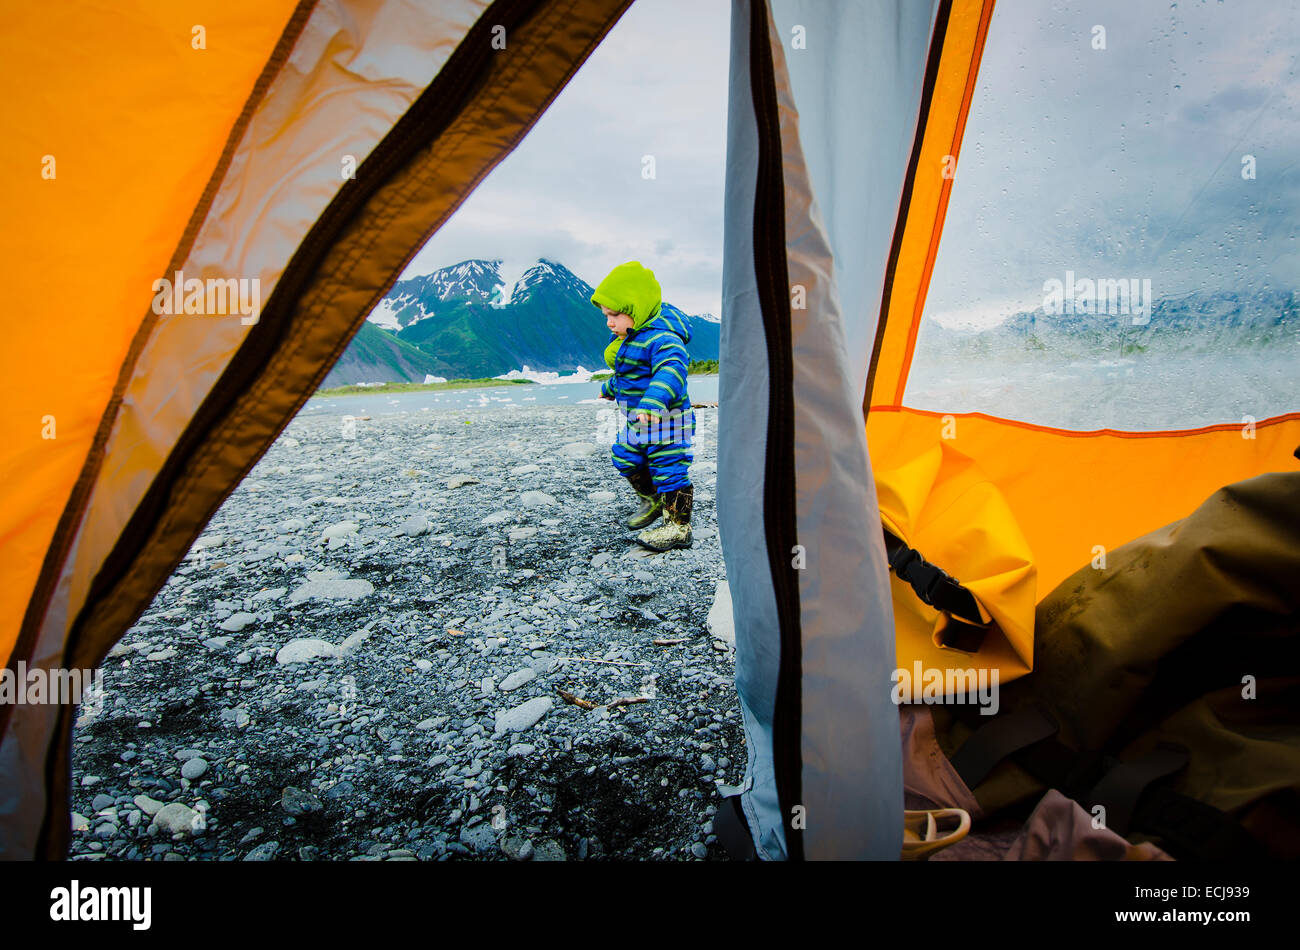 A warmly dressed two year old boy explores outside a tent on a rocky beach next to Bear Lake, Kenai Fjords National - Stock Image